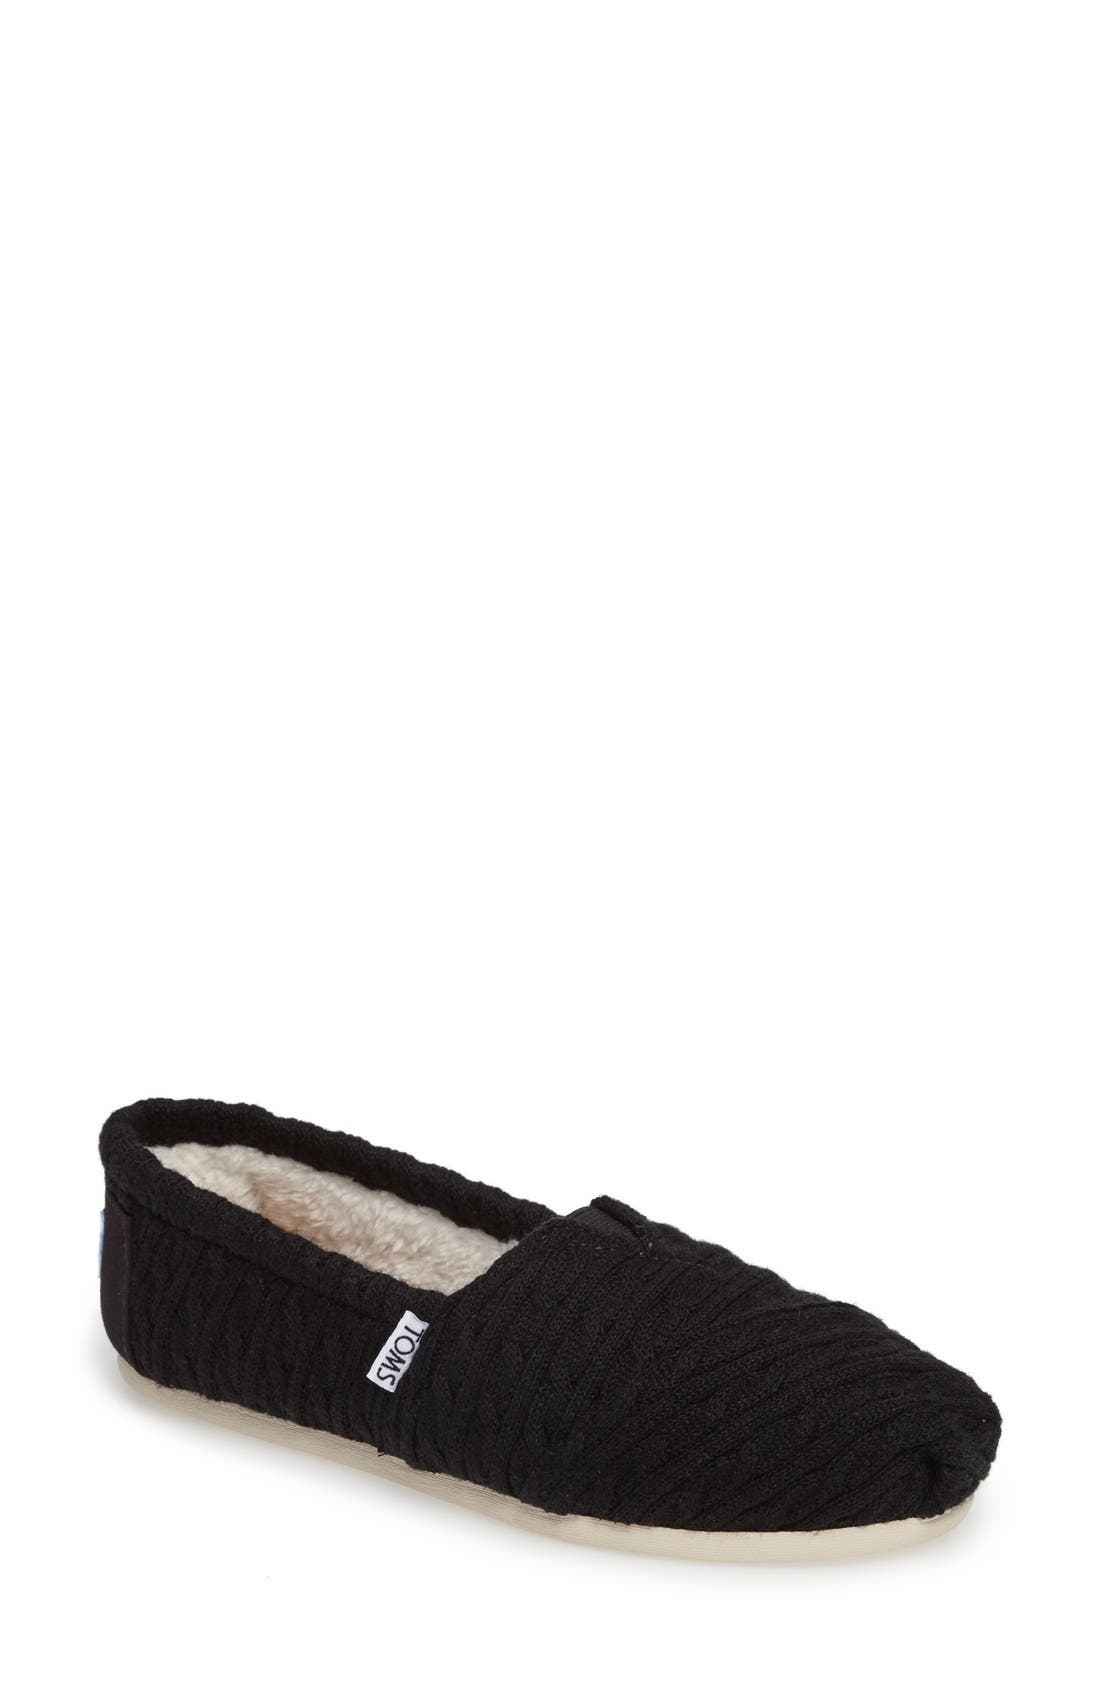 Alternate Image 1 Selected - TOMS 'Classic Knit' Slip-On (Women)